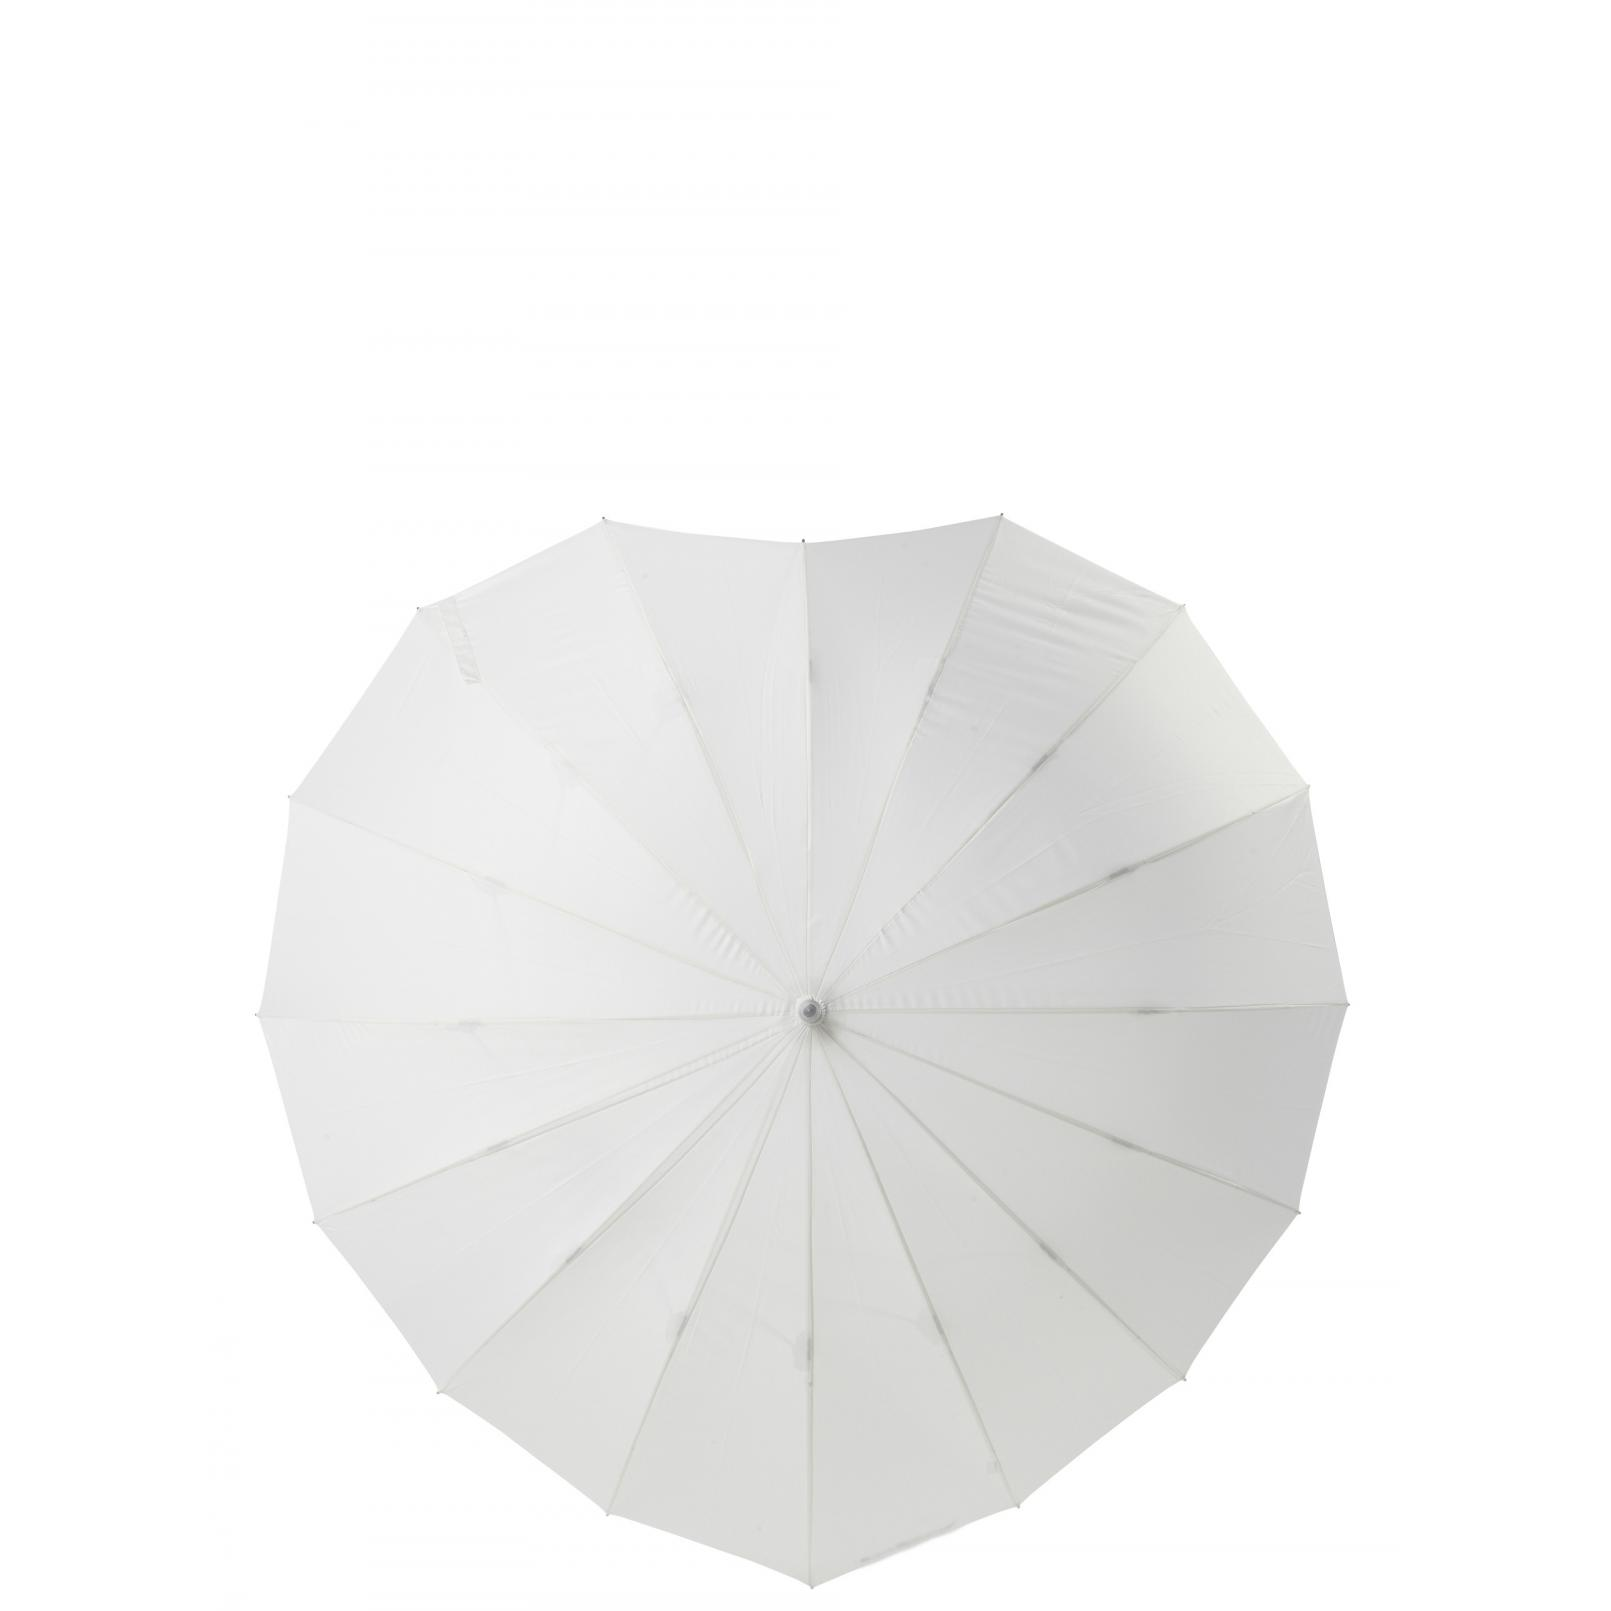 Poirier Heart Wedding Umbrella 1